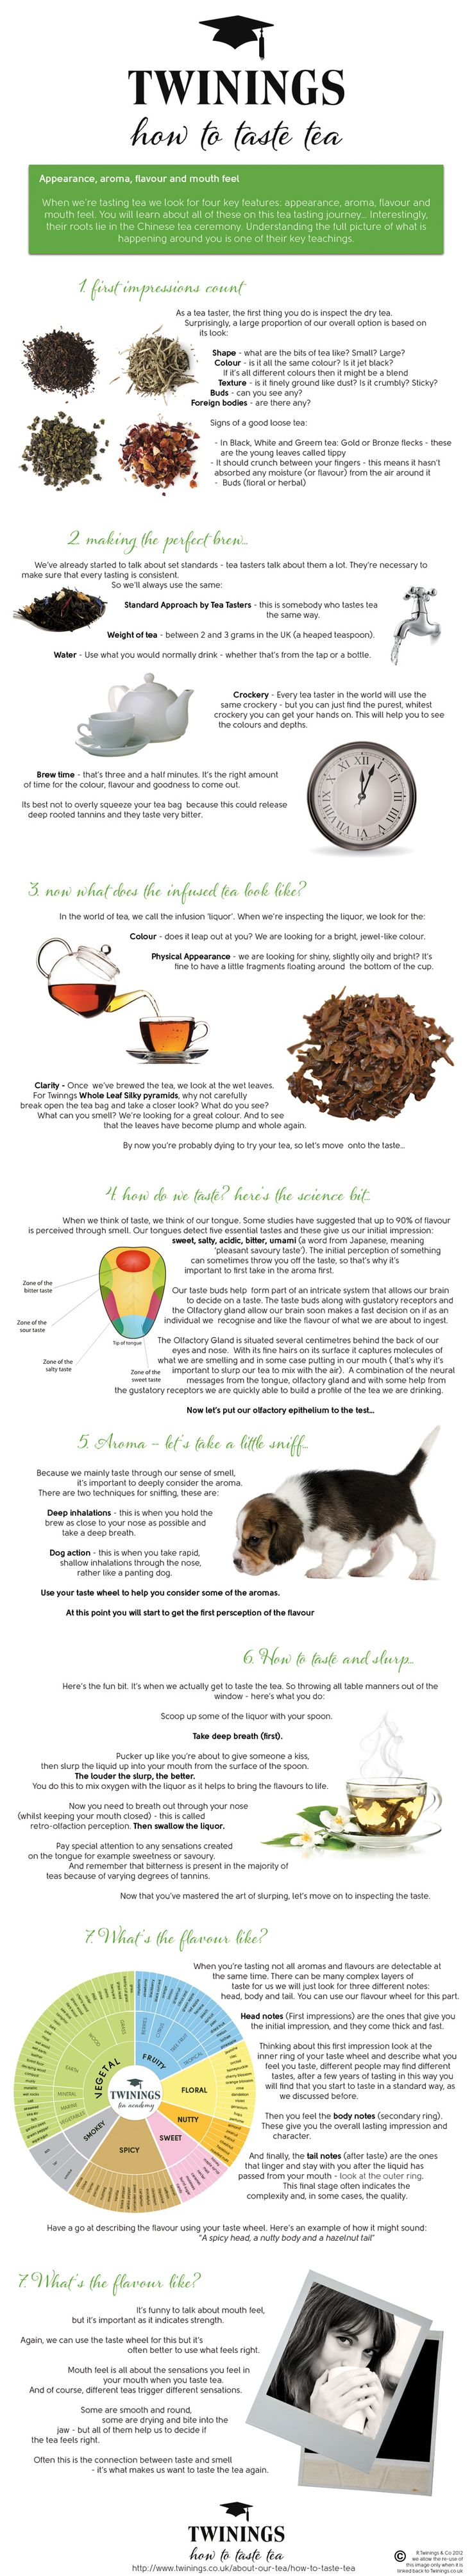 """""""How to taste tea"""" Infographic    Here is an HTML version: http://www.twinings.co.uk/about-our-tea/how-to-taste-tea"""